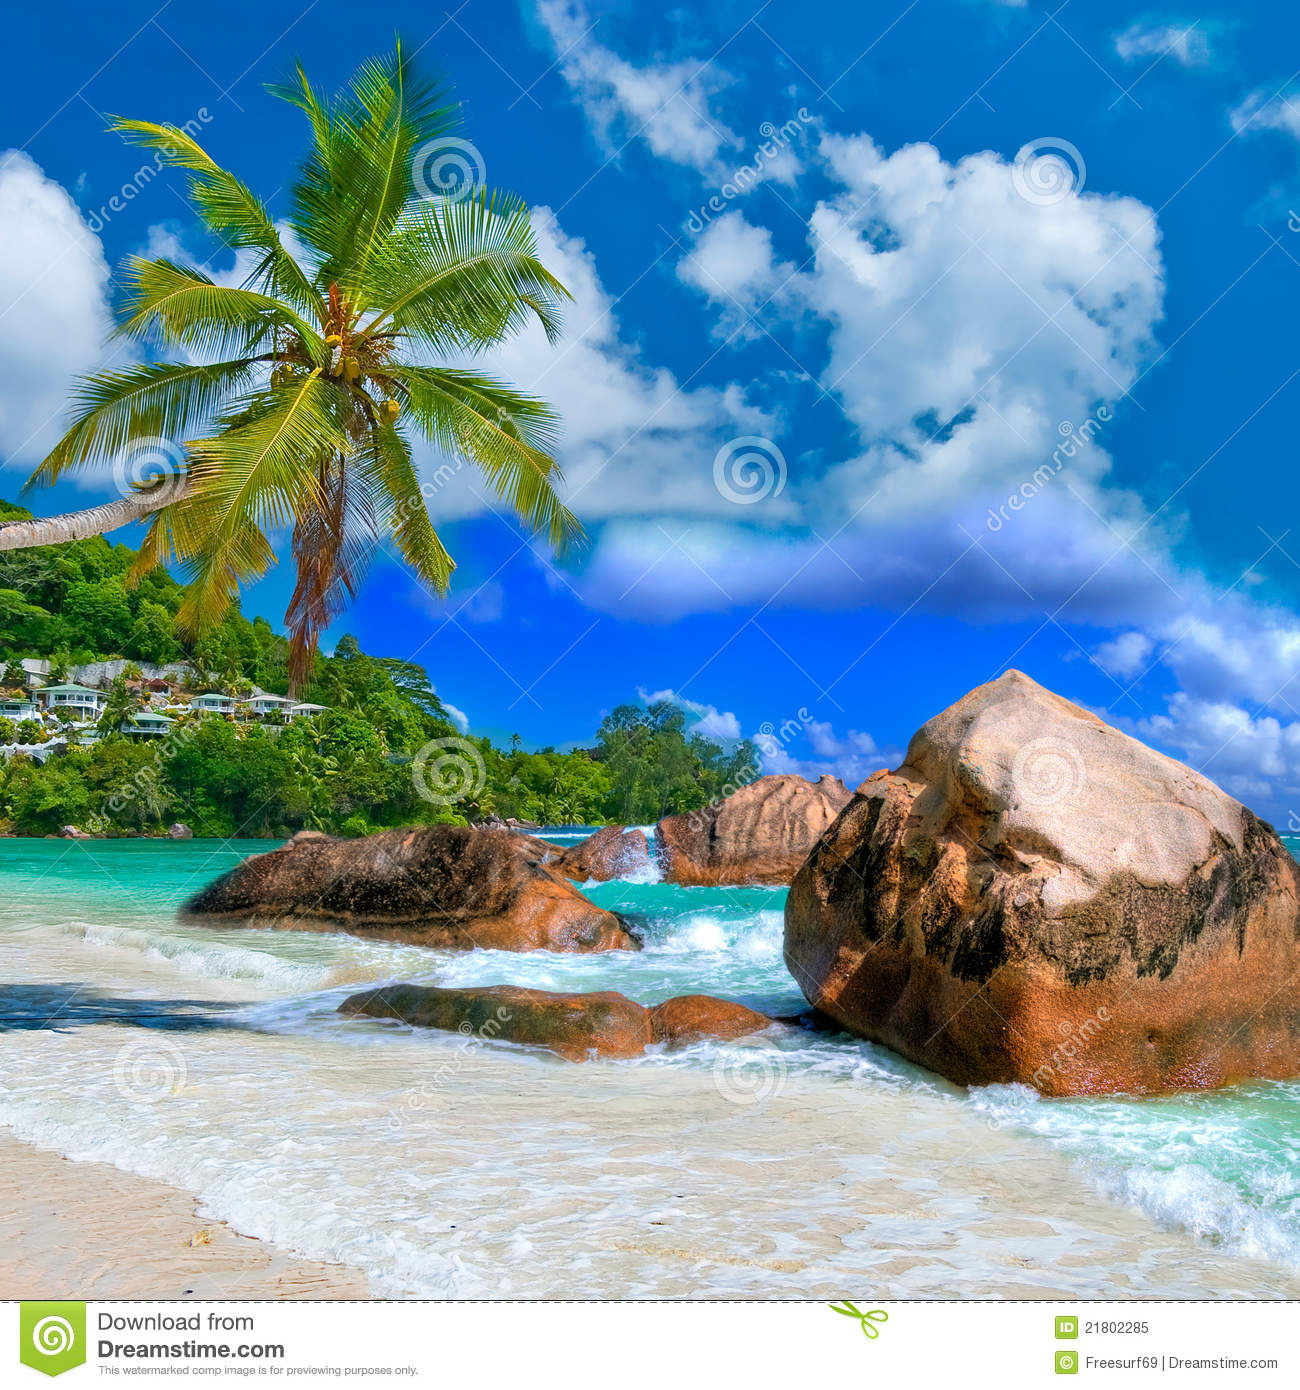 Tropical Scenery Royalty Free Stock Photo  Image: 21802285